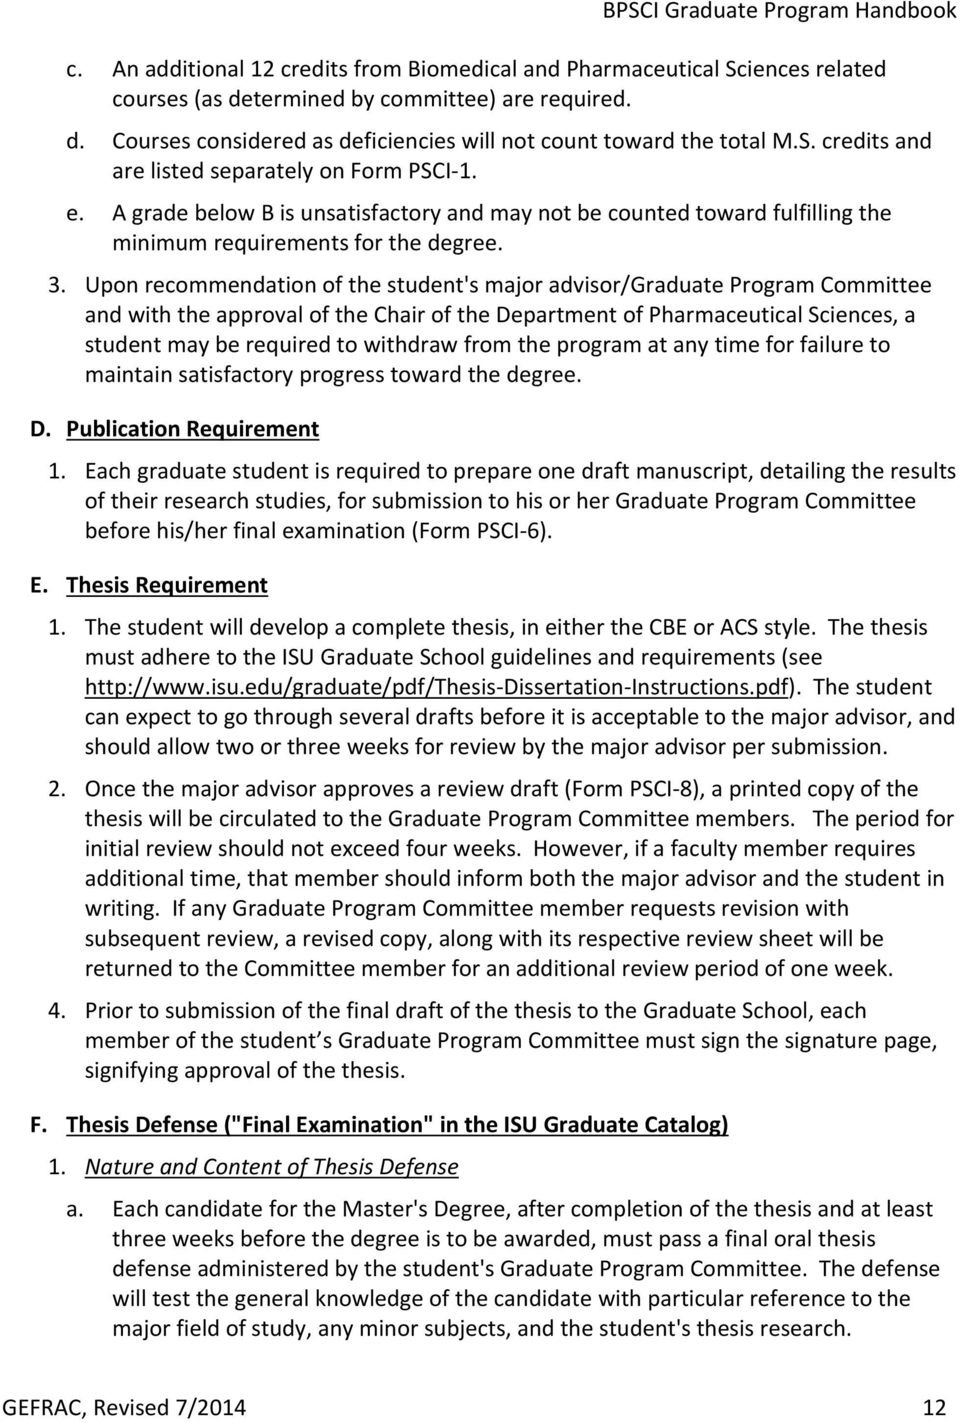 Upon recommendation of the student's major advisor/graduate Program Committee and with the approval of the Chair of the Department of Pharmaceutical Sciences, a student may be required to withdraw